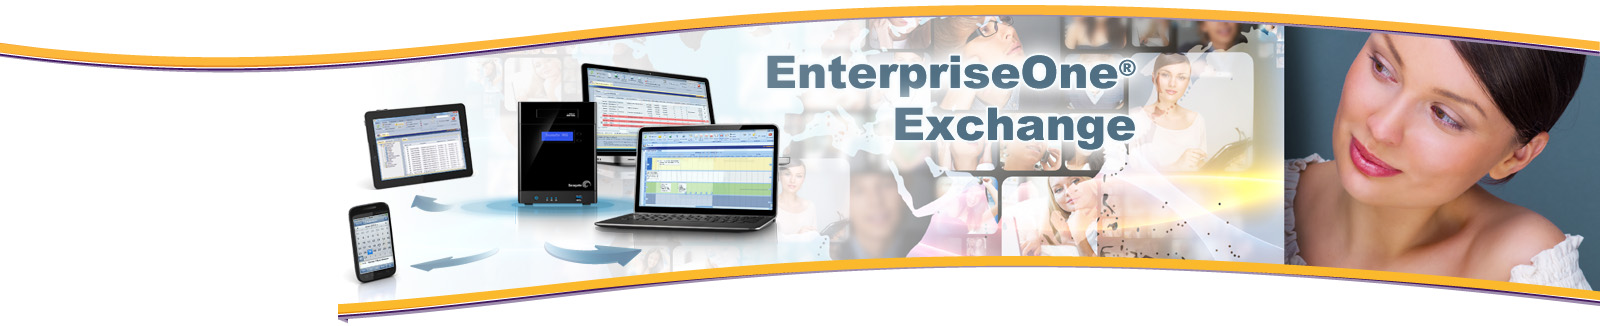 EnterpriseOne Exchange